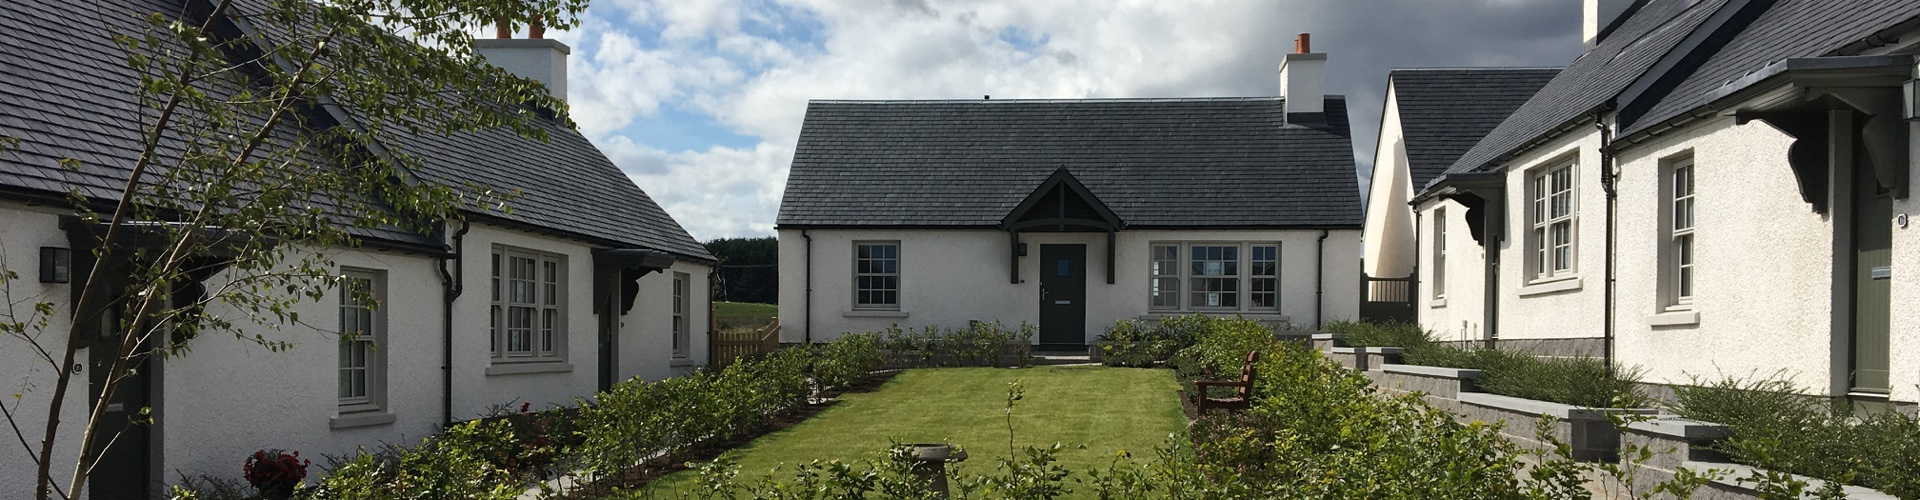 Chapelton Cottages